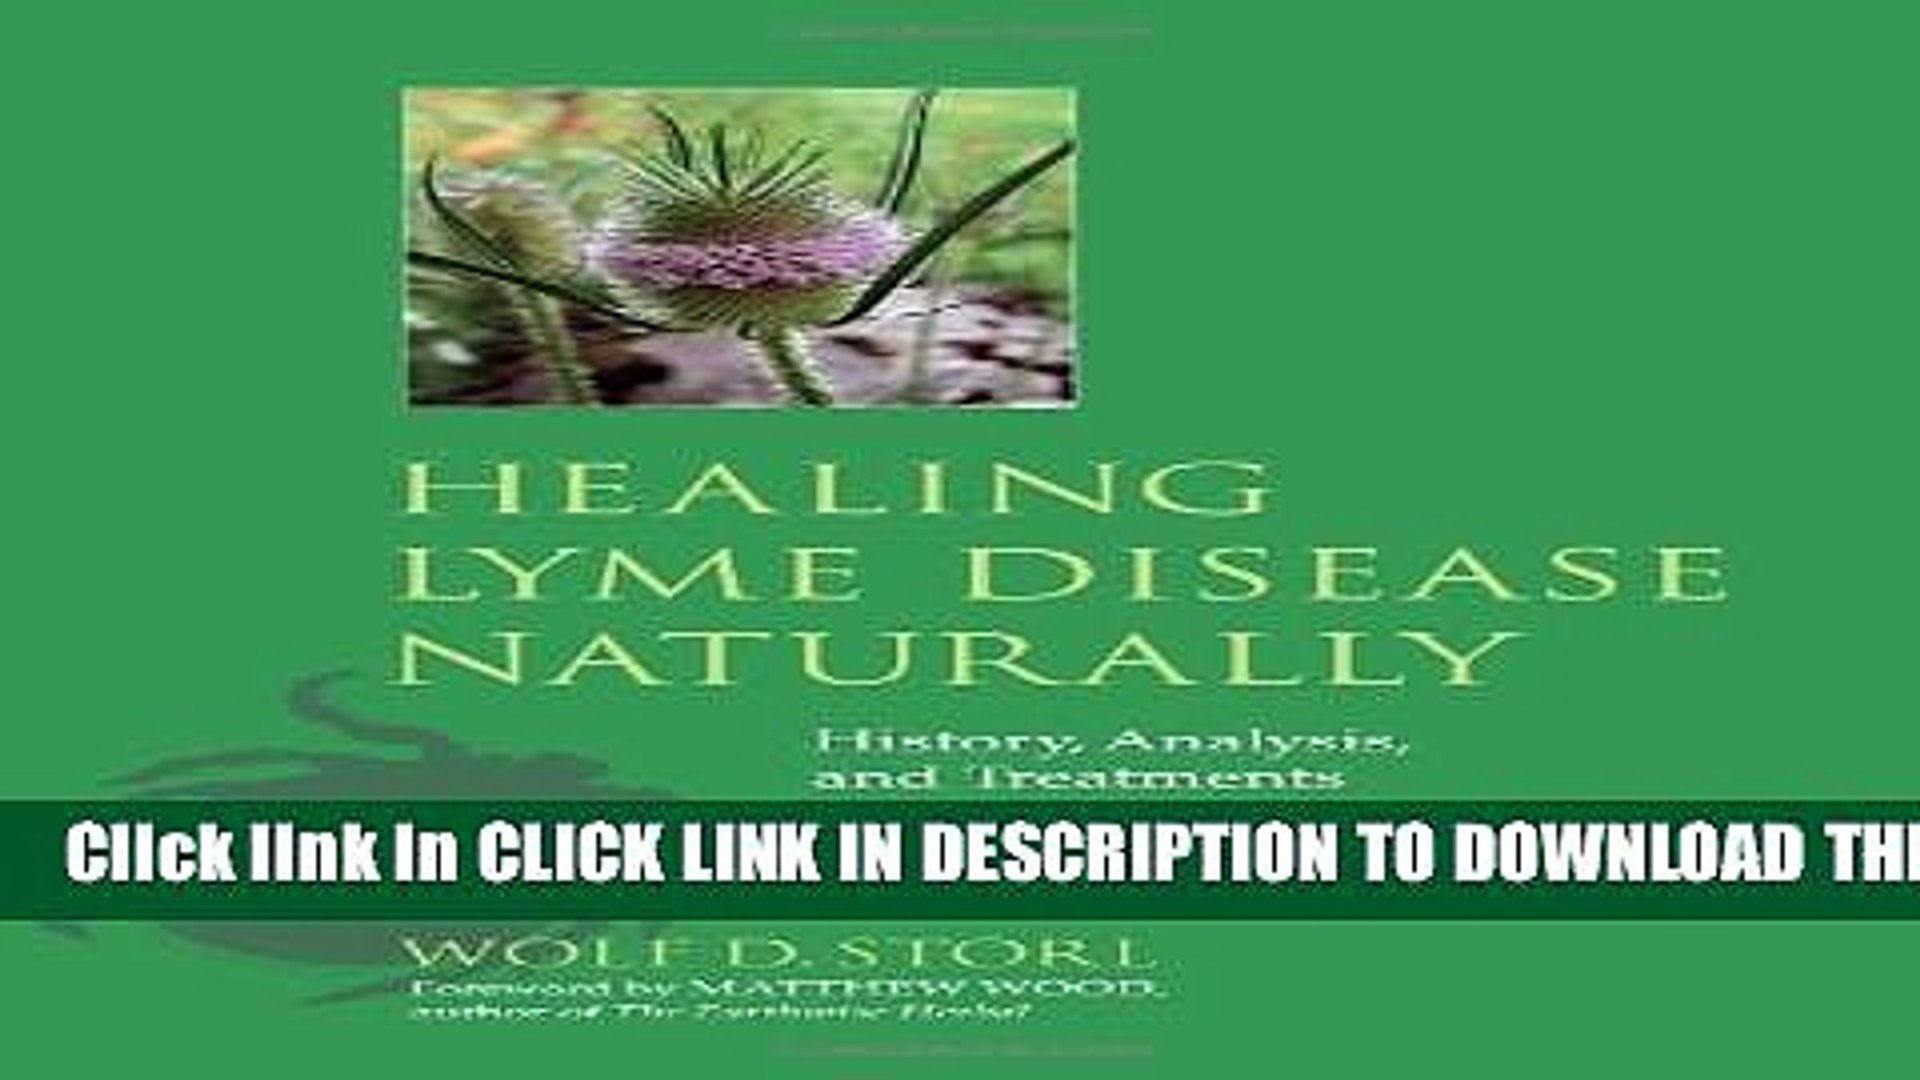 [PDF] Healing Lyme Disease Naturally: History, Analysis, and Treatments  Popular Online